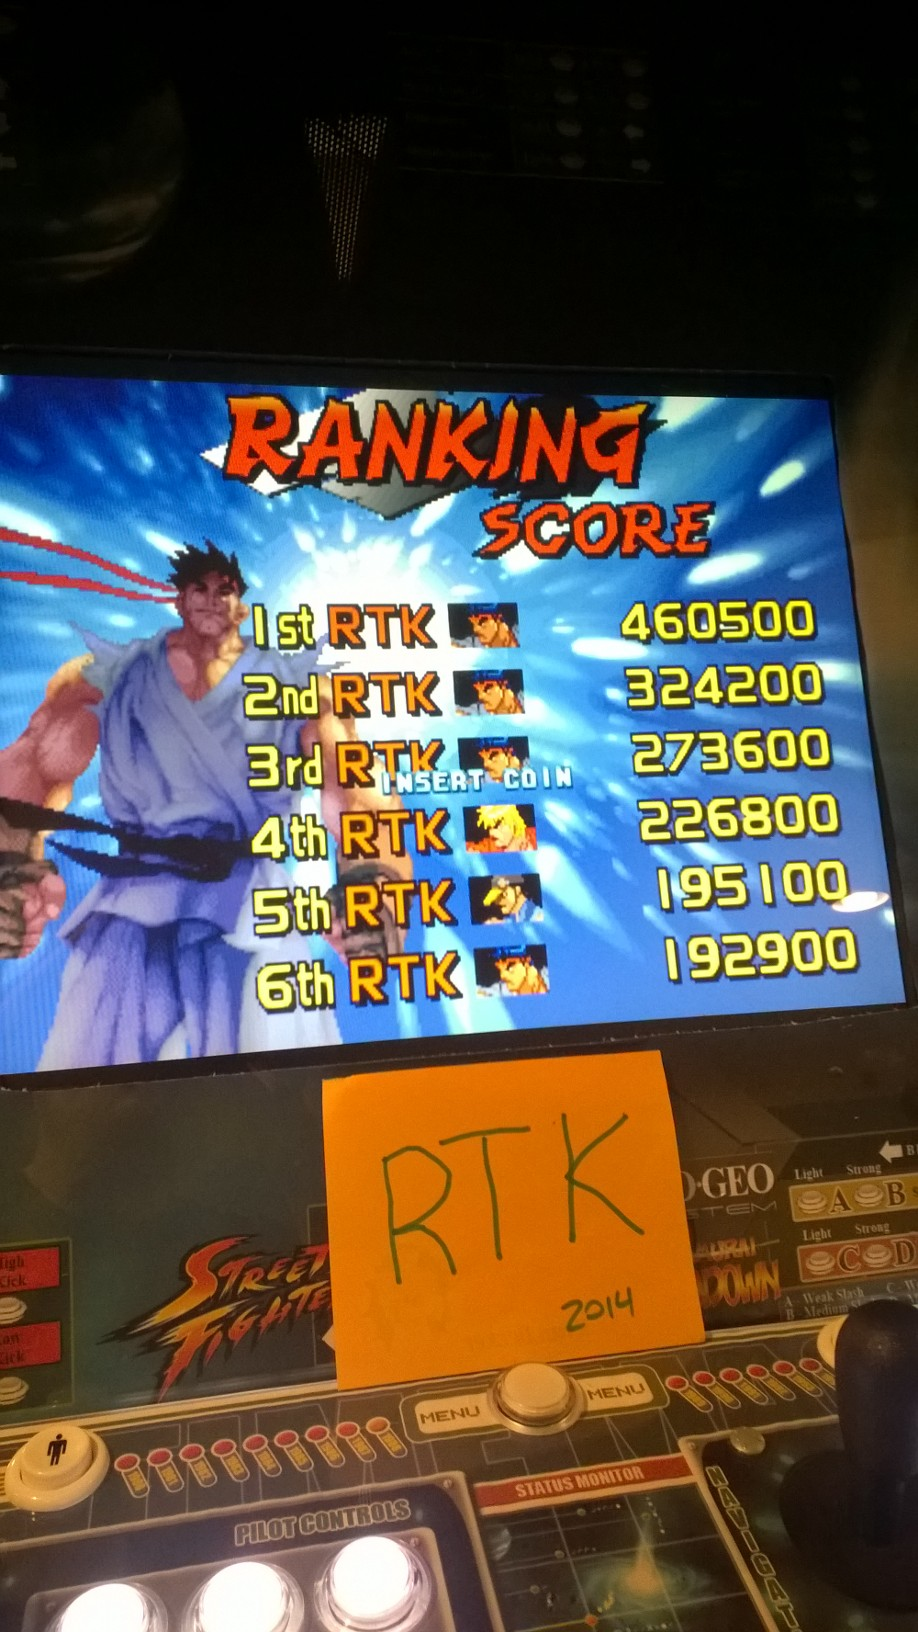 rtkiii: Street Fighter III: 2nd Impact: Giant Attack [sfiii2] (Arcade Emulated / M.A.M.E.) 460,500 points on 2014-05-13 06:44:50